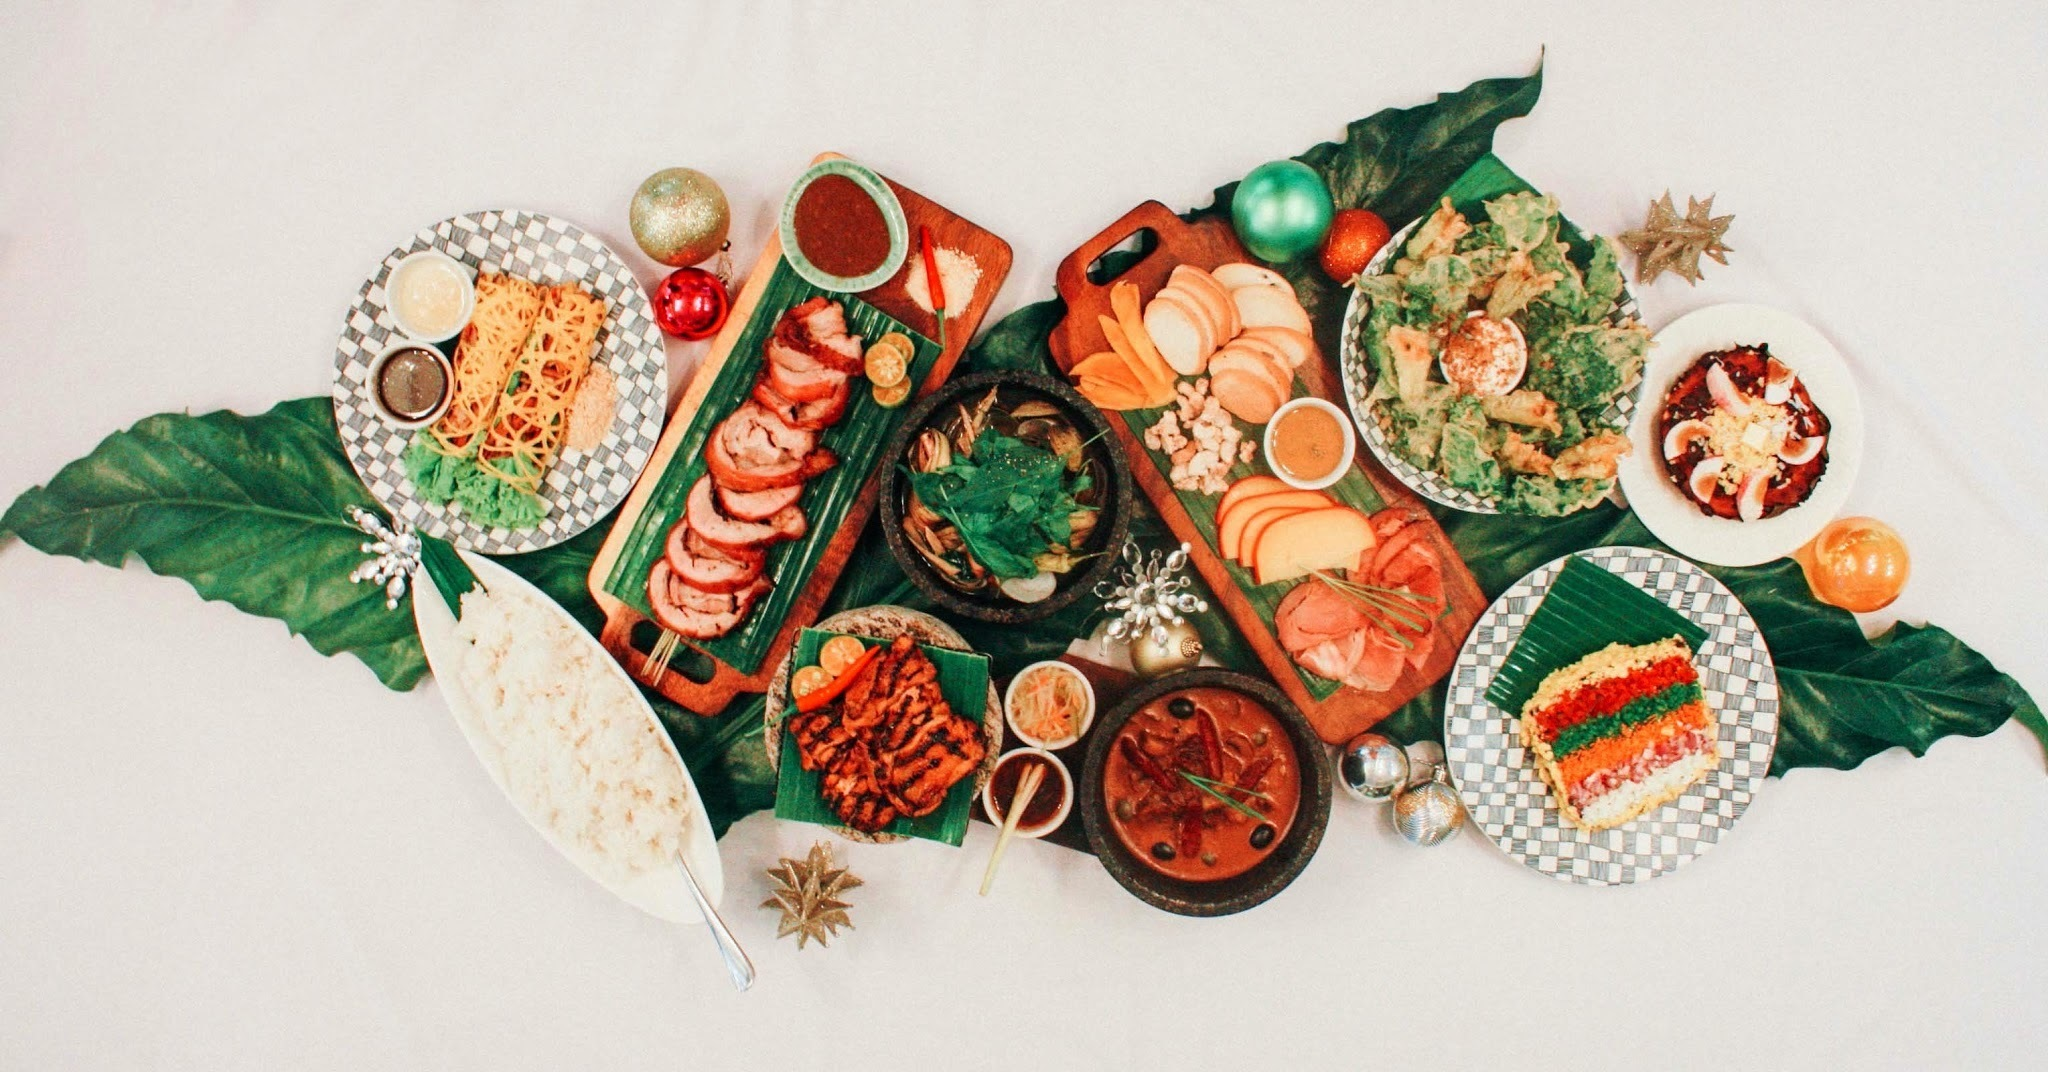 Where to Get Christmas Food Packages for Parties